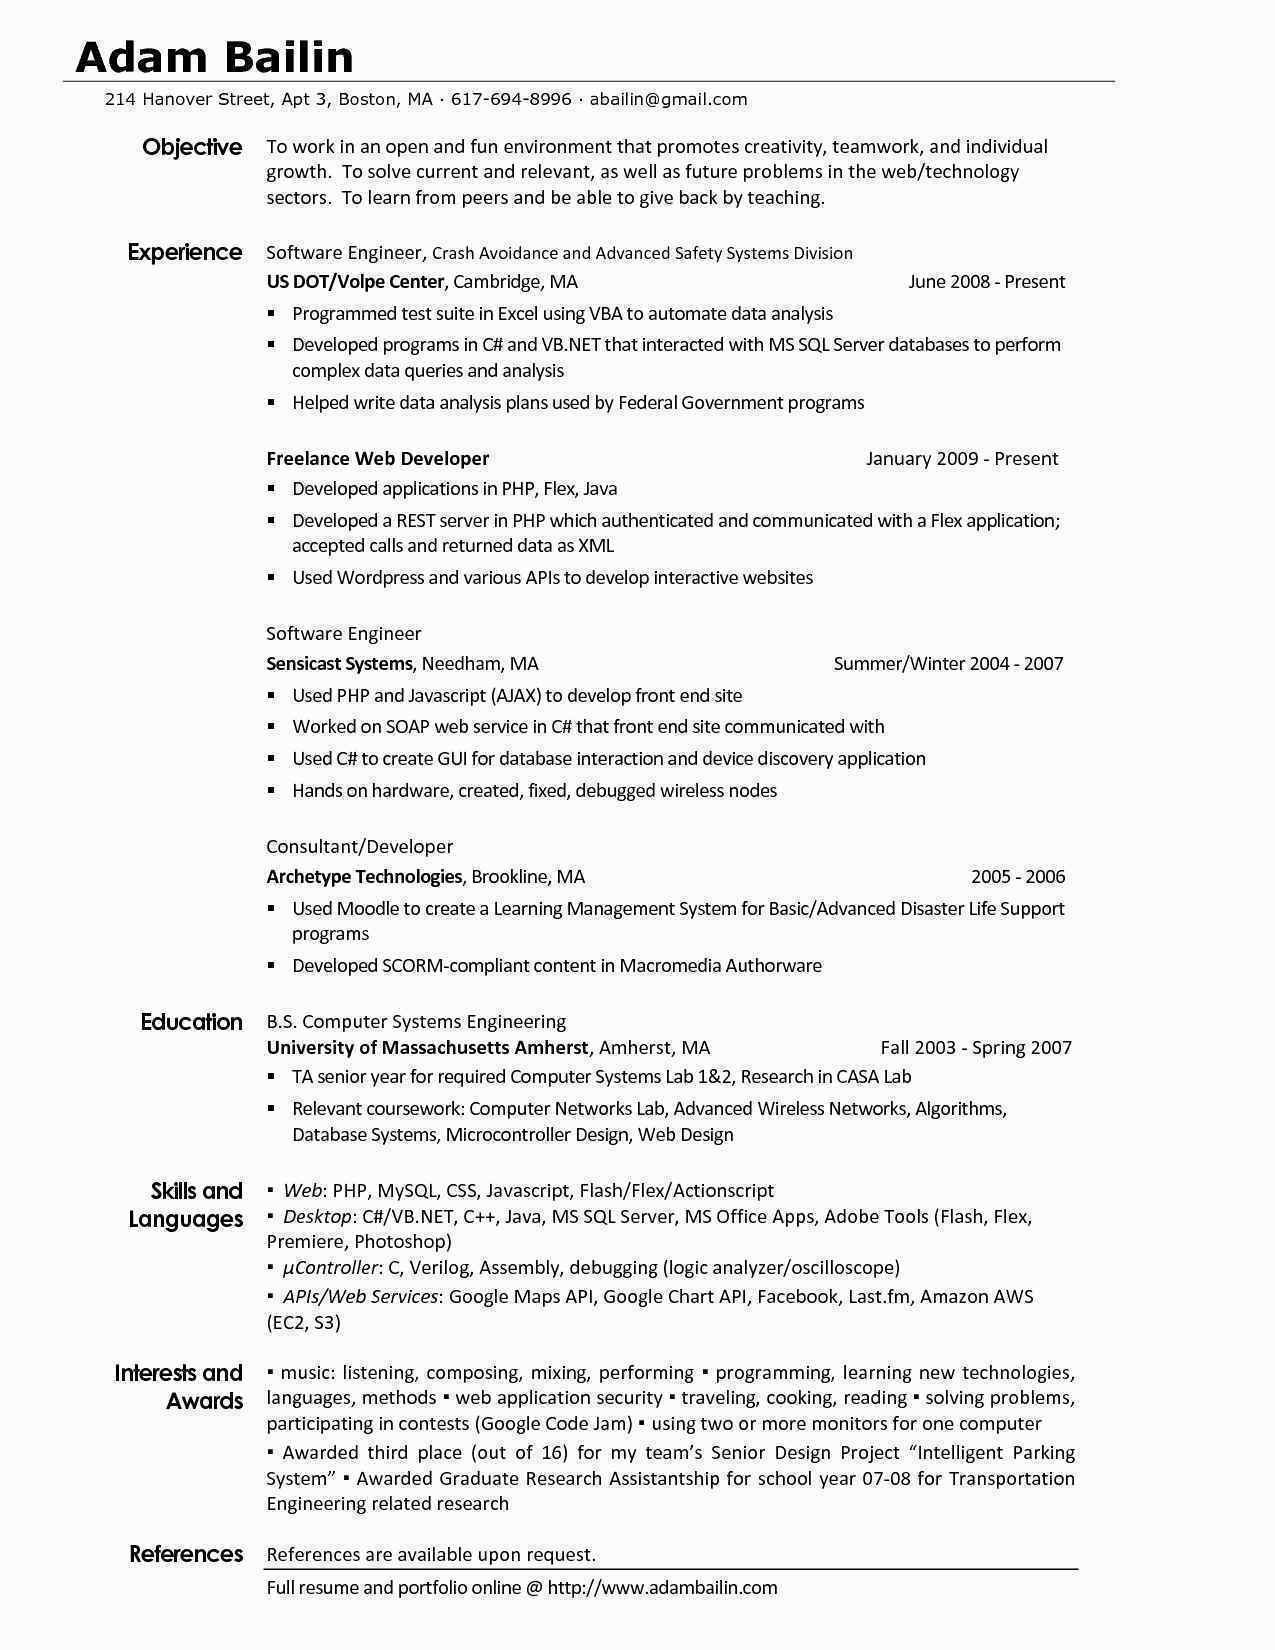 Experience Resume Format For Xml Developer (With images